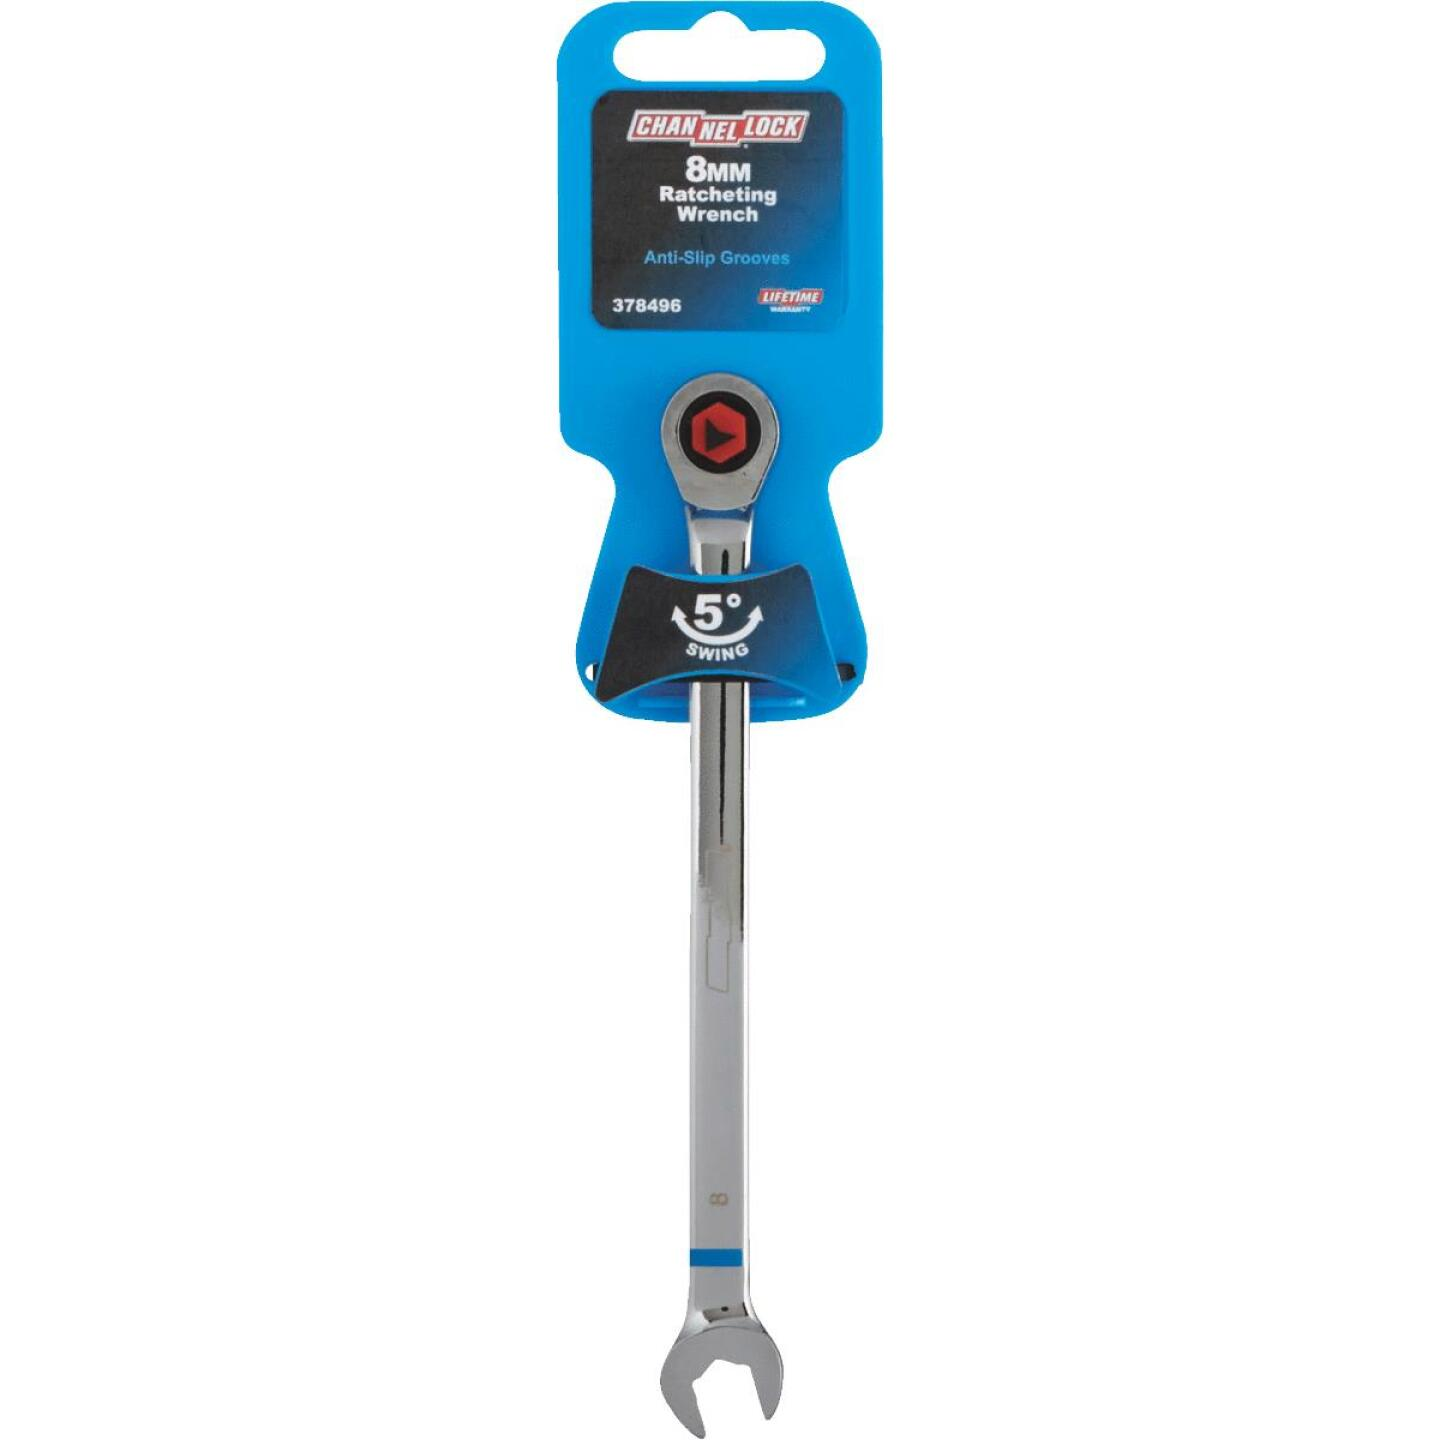 Channellock Metric 8 mm 12-Point Ratcheting Combination Wrench Image 2